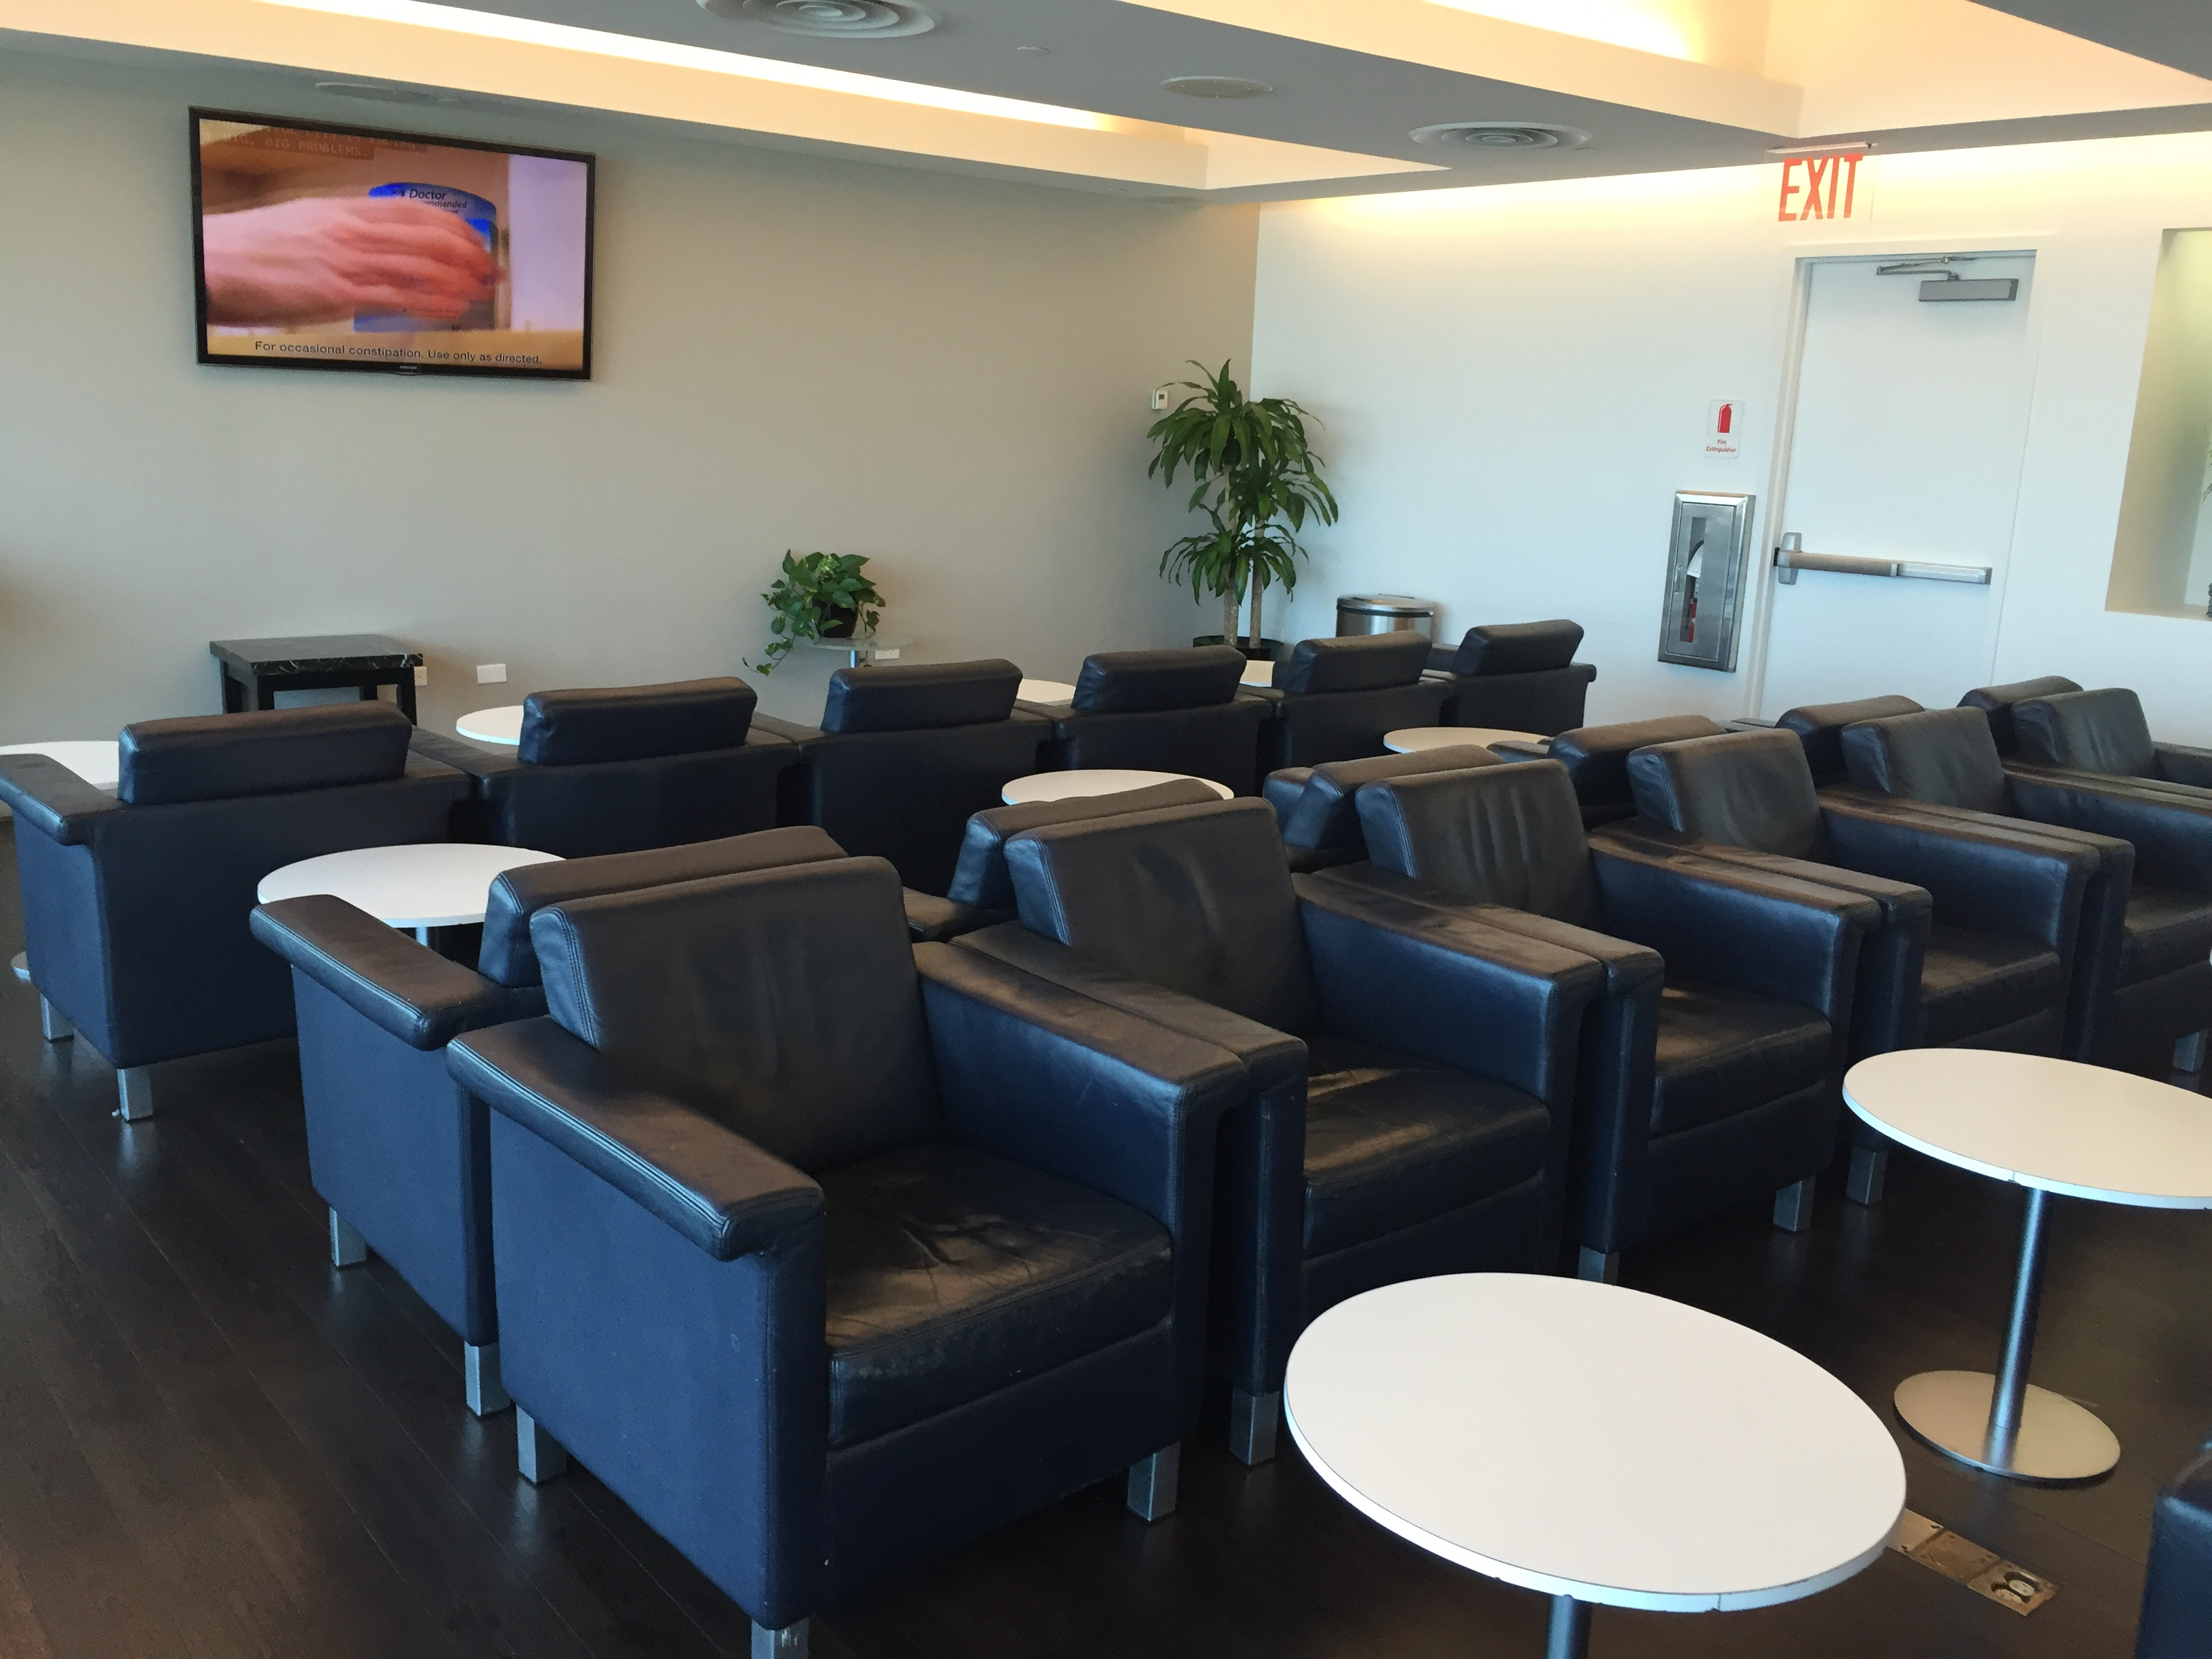 Wingtips JFK Lounge Seats 1